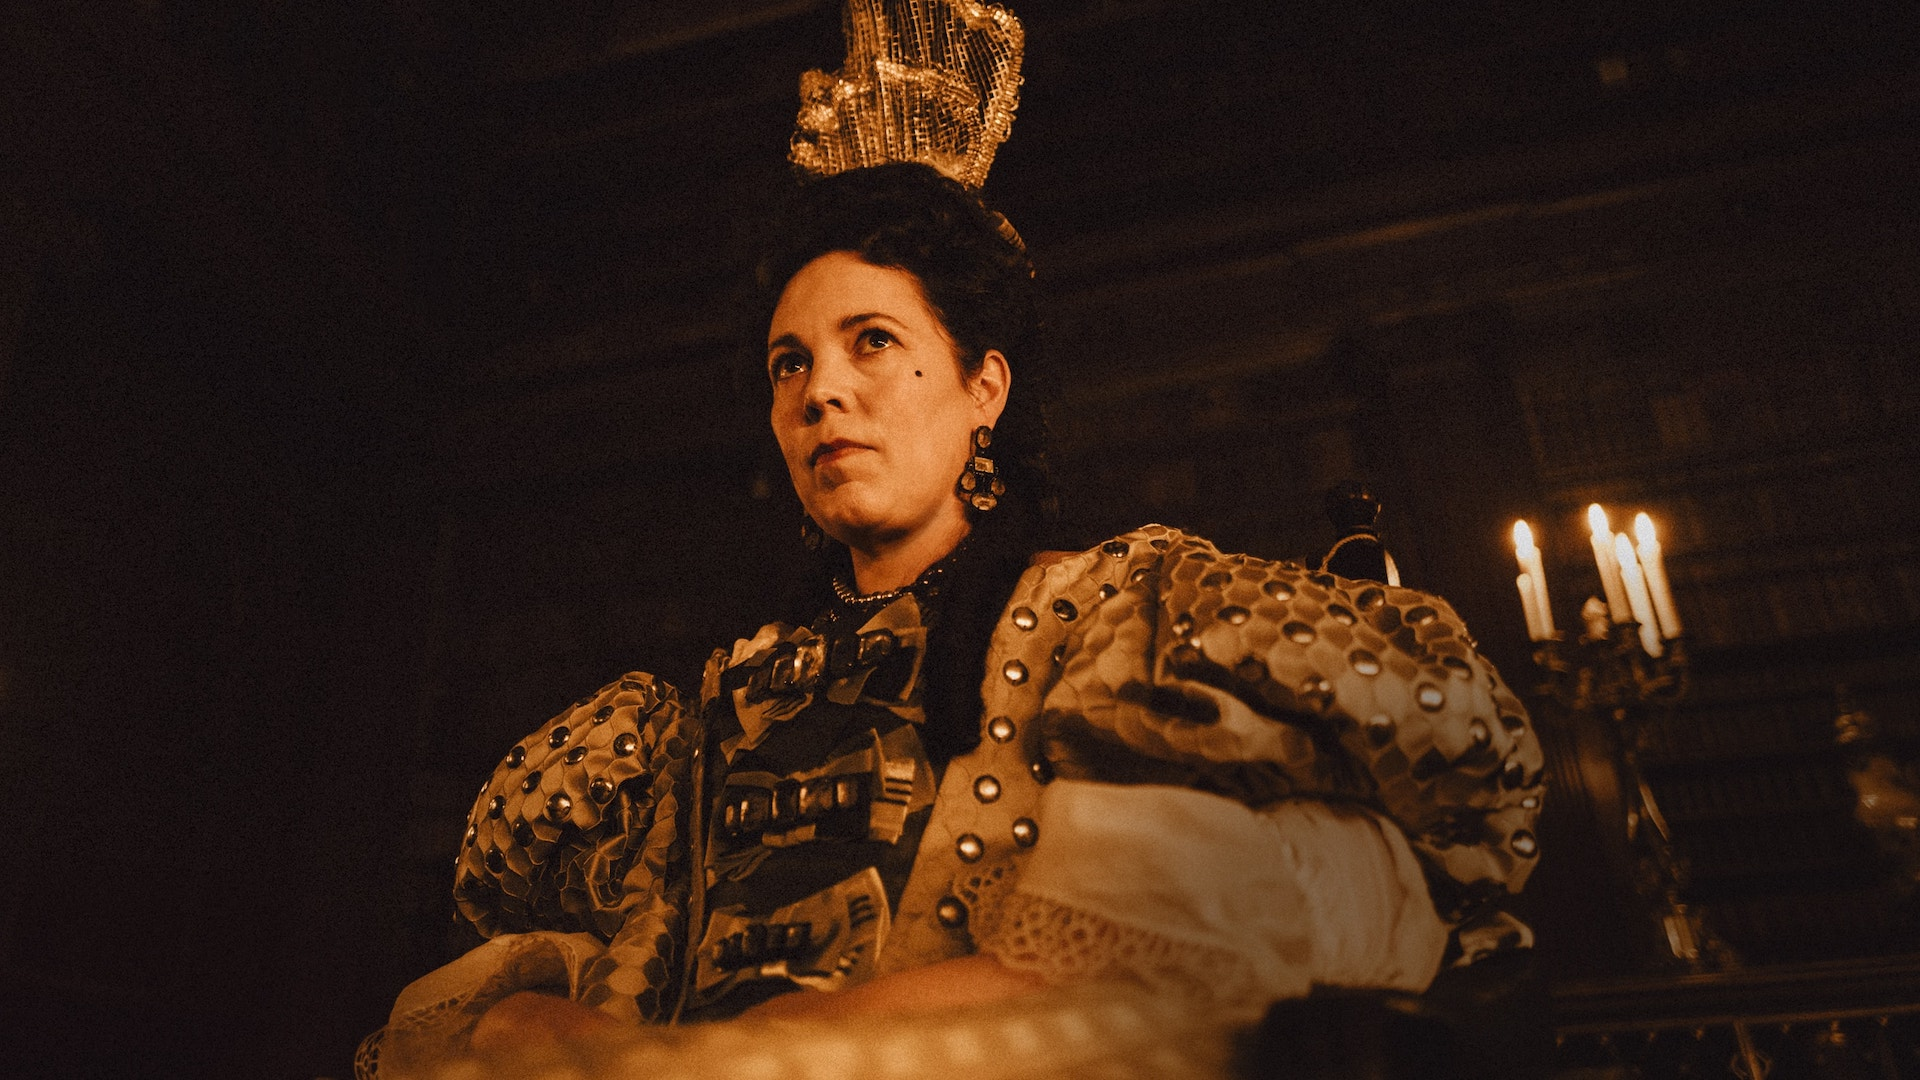 THE FAVOURITE in Insole Court Mansion   7:30pm, Friday 31st May 2019 -  SOLD OUT